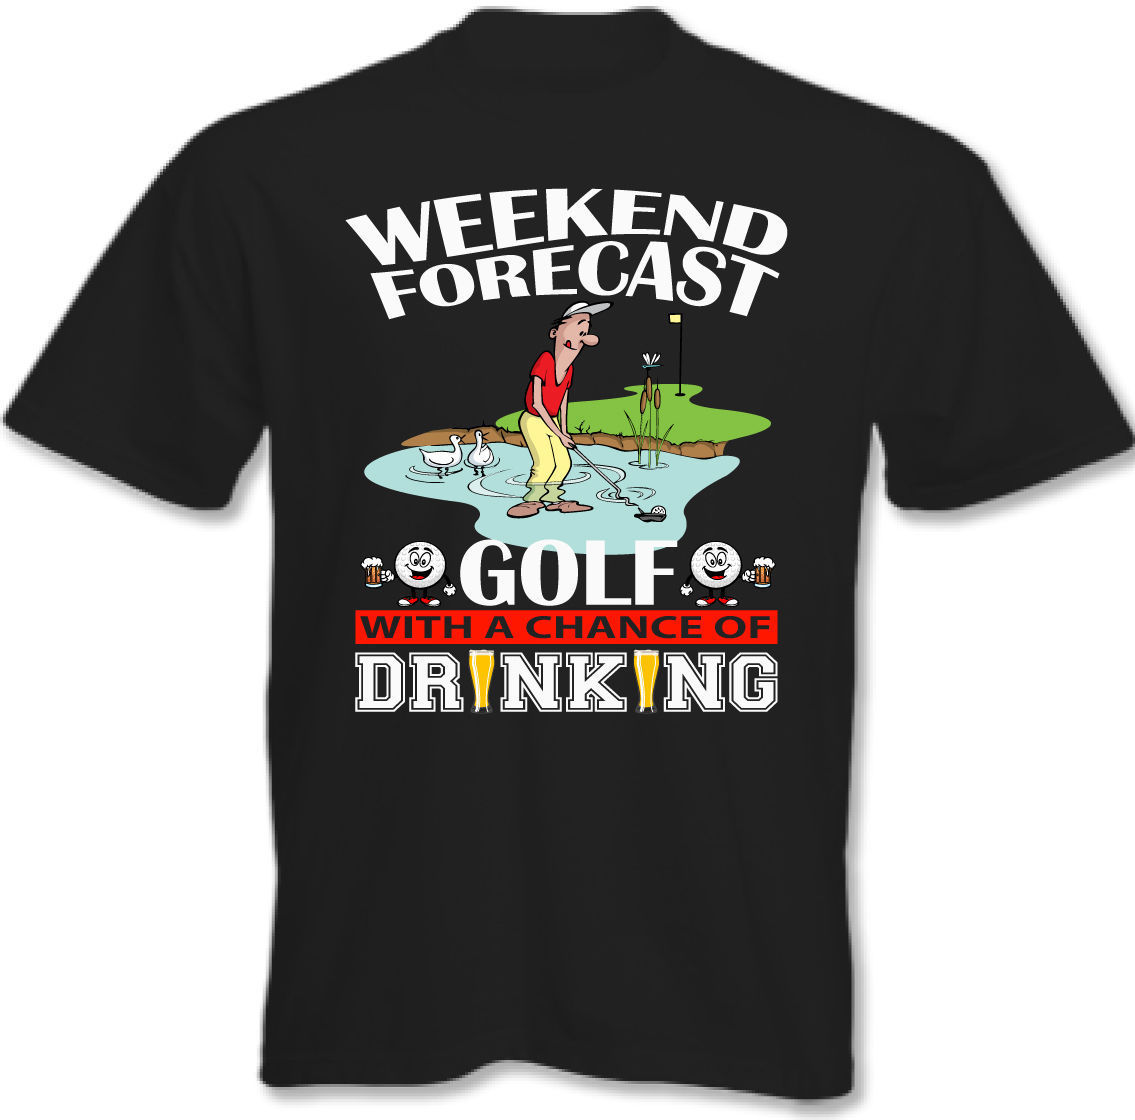 Weekend Forecast GOLF bere - T-shirt Uomo Club borsa Putter PILOTA Maglietta